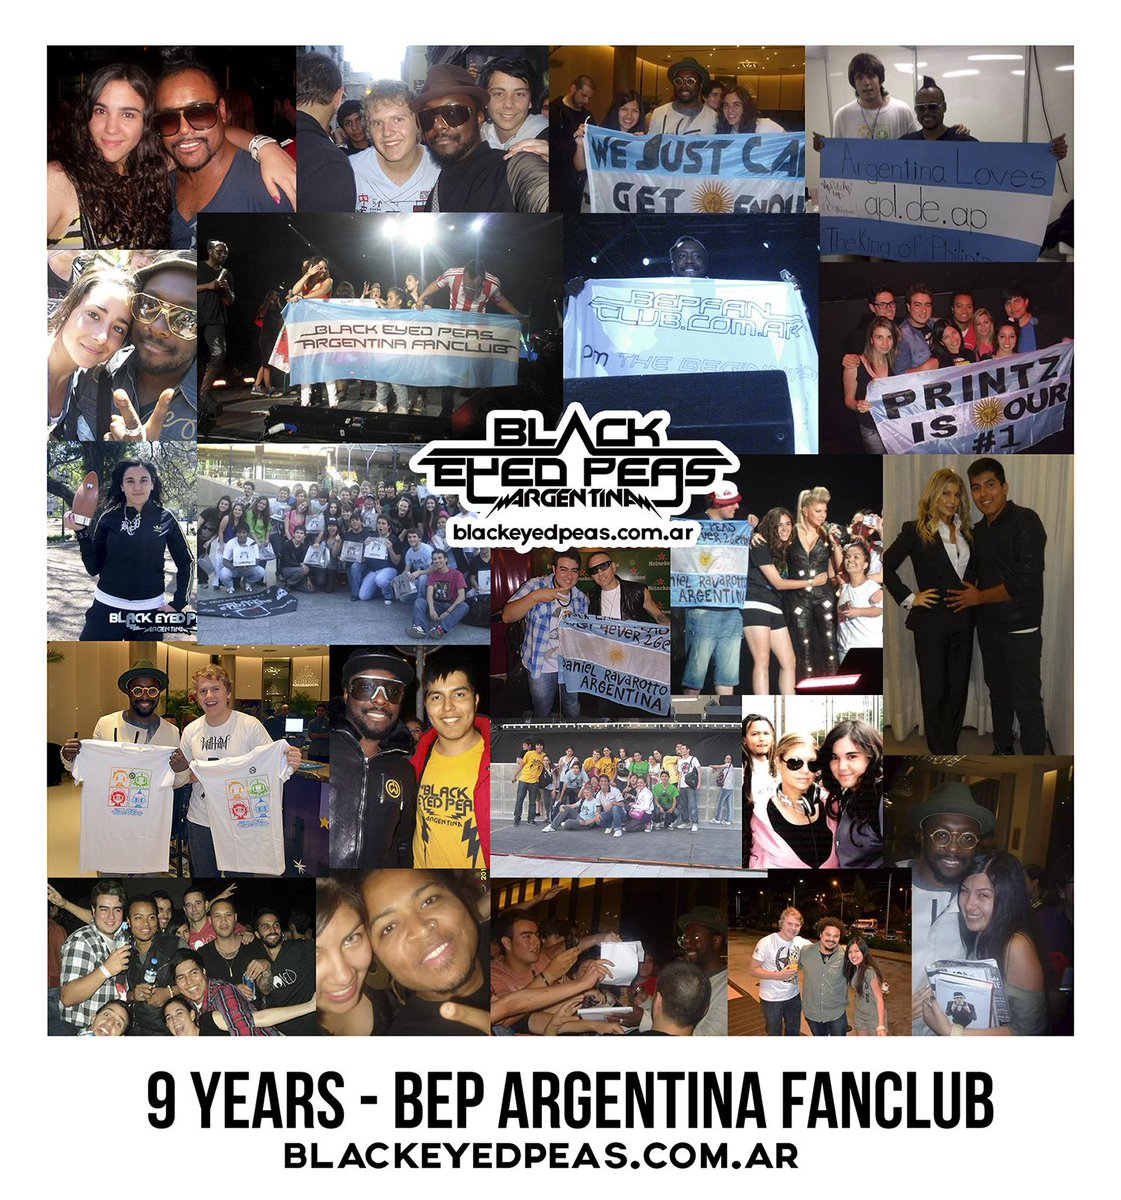 today BEP ARGENTINA turns 9 YEARS OLD! @iamwill @TabBep @fergie @apldeap @bep @PrintzBoard @kharris2047 @PoloMolina1 http://t.co/JF1S3F4wv4